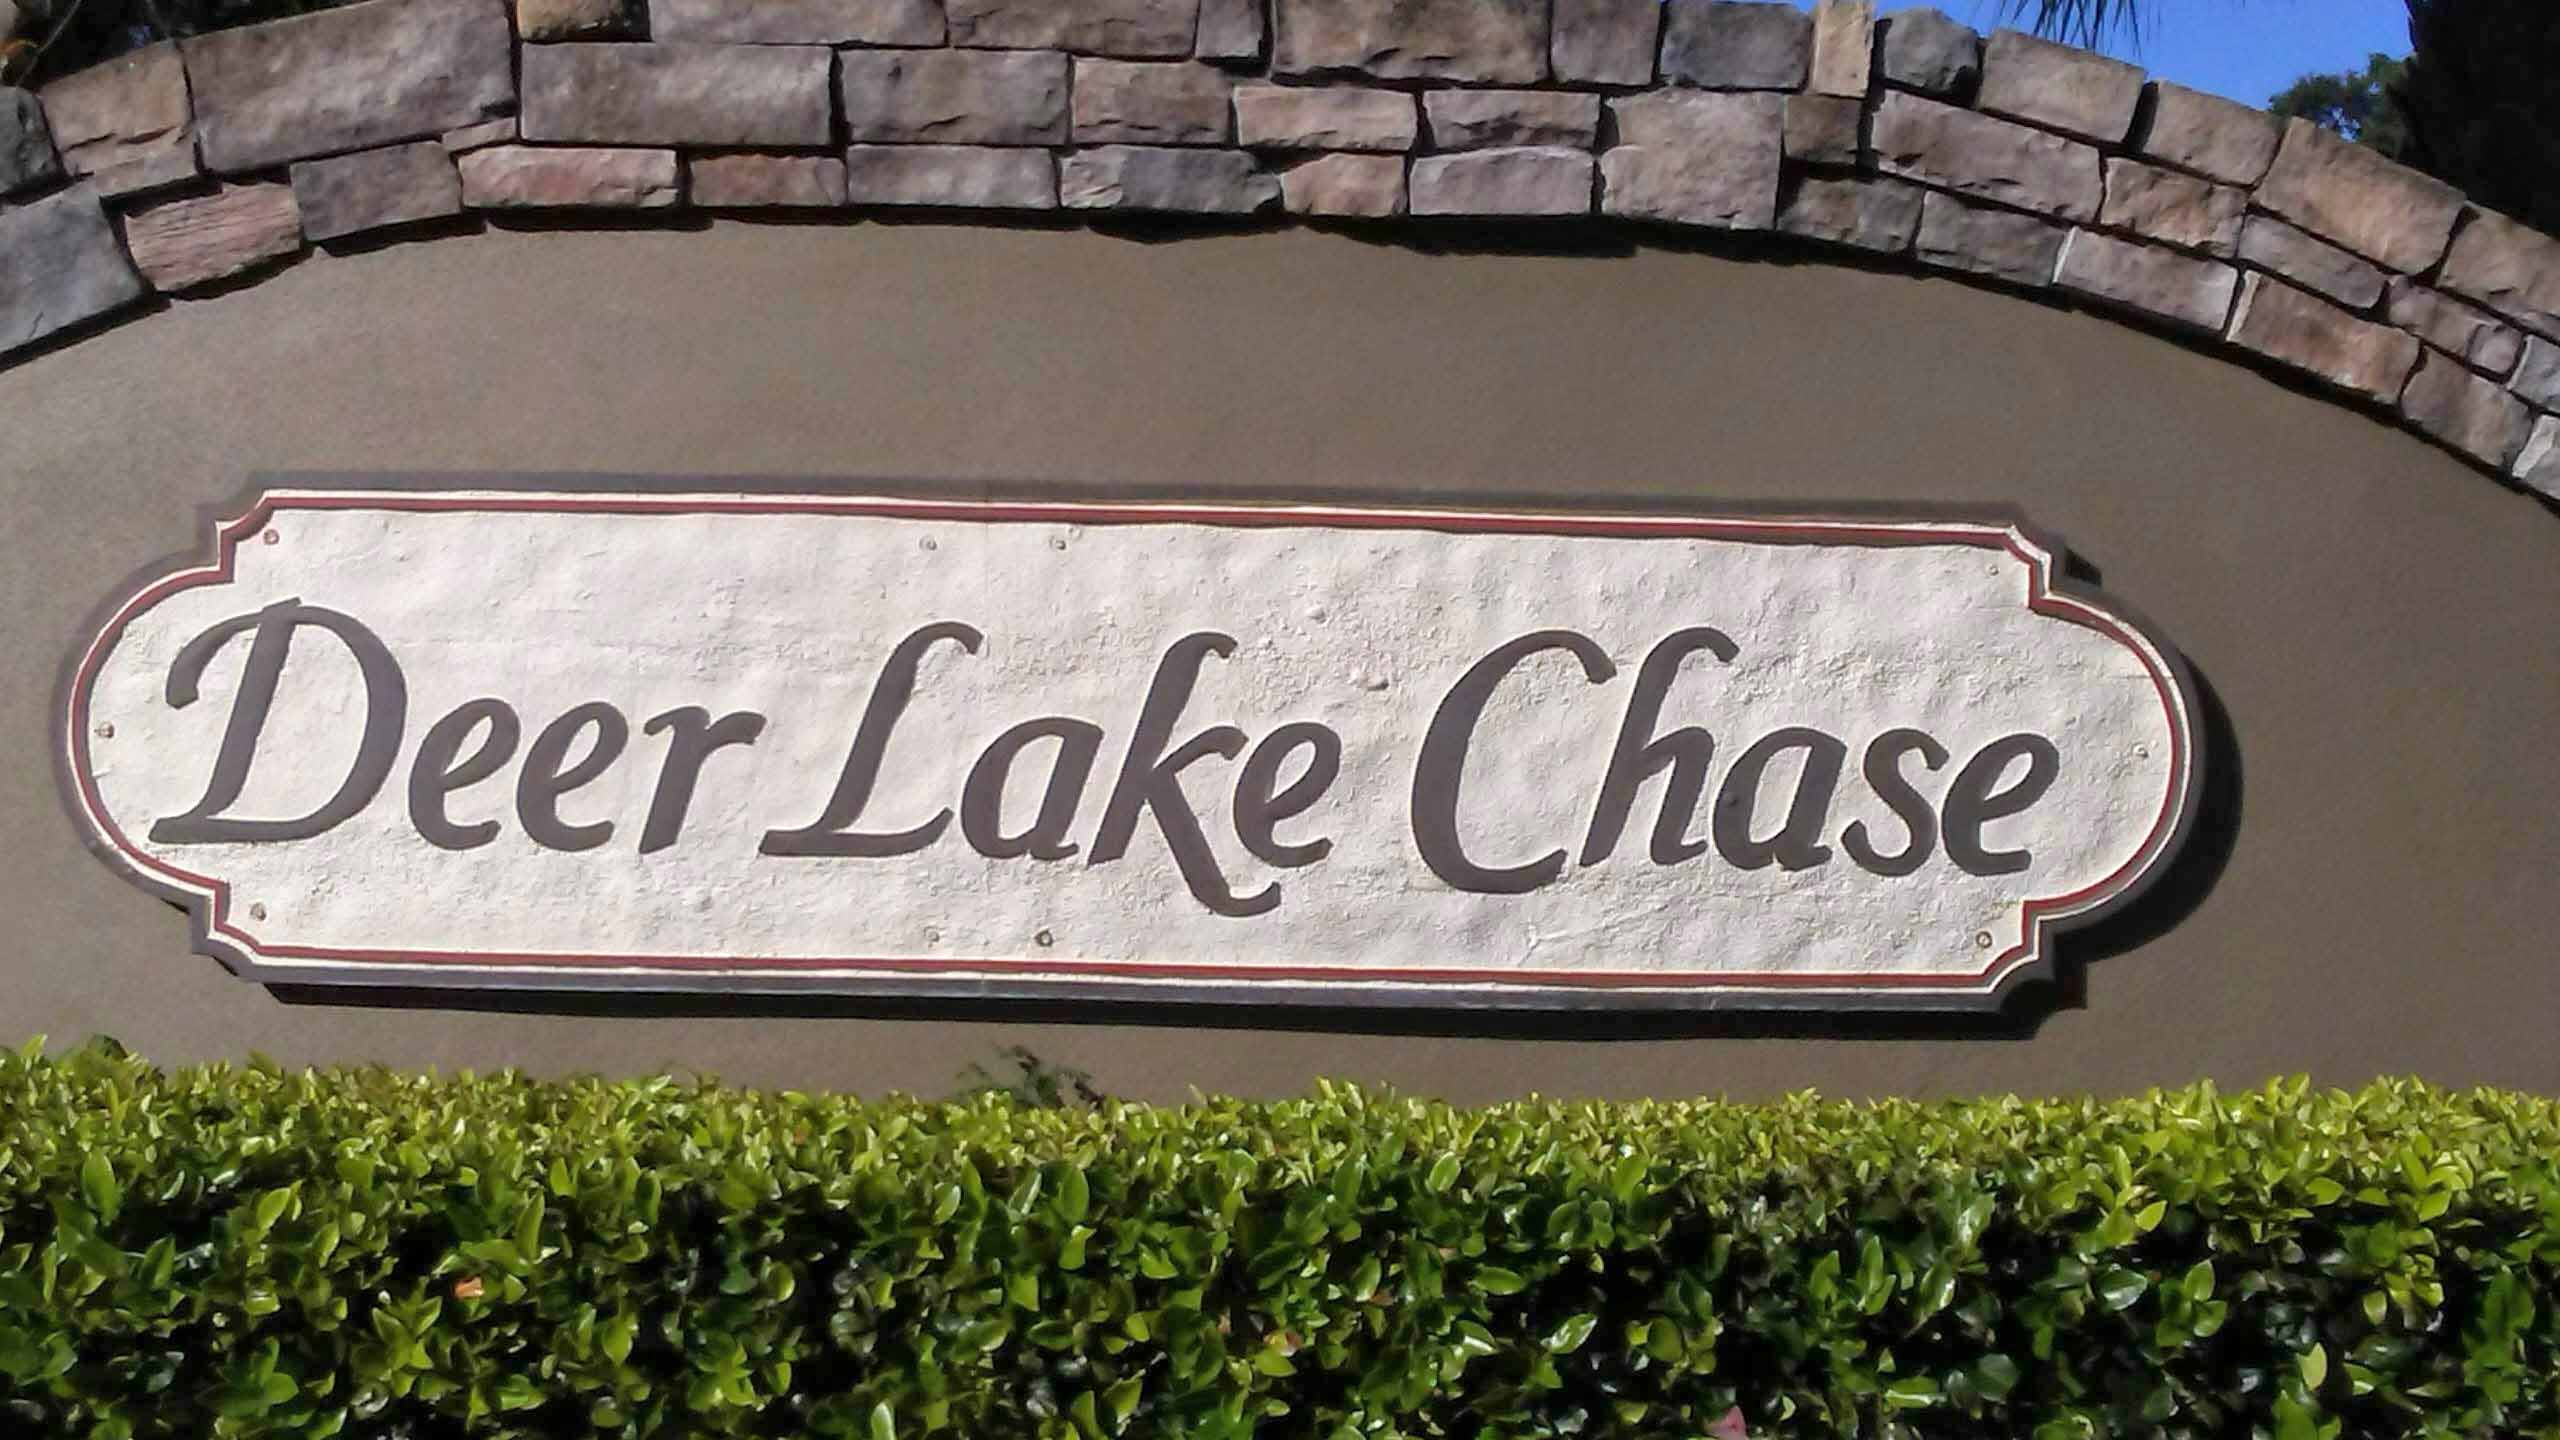 Deer Lake Chase, Apopka, Florida 32712